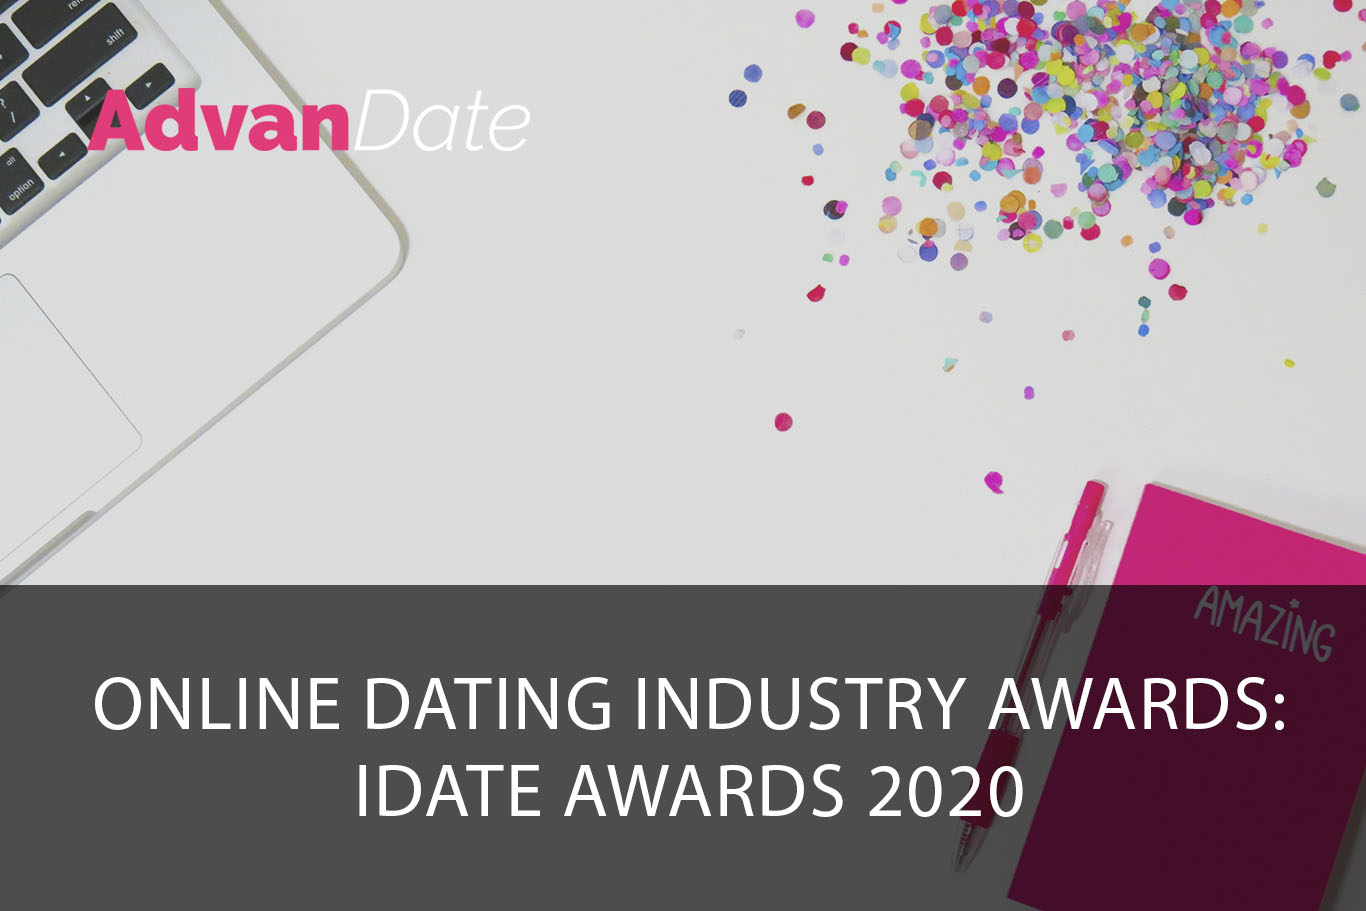 Online dating industry awards – iDate Awards 2020